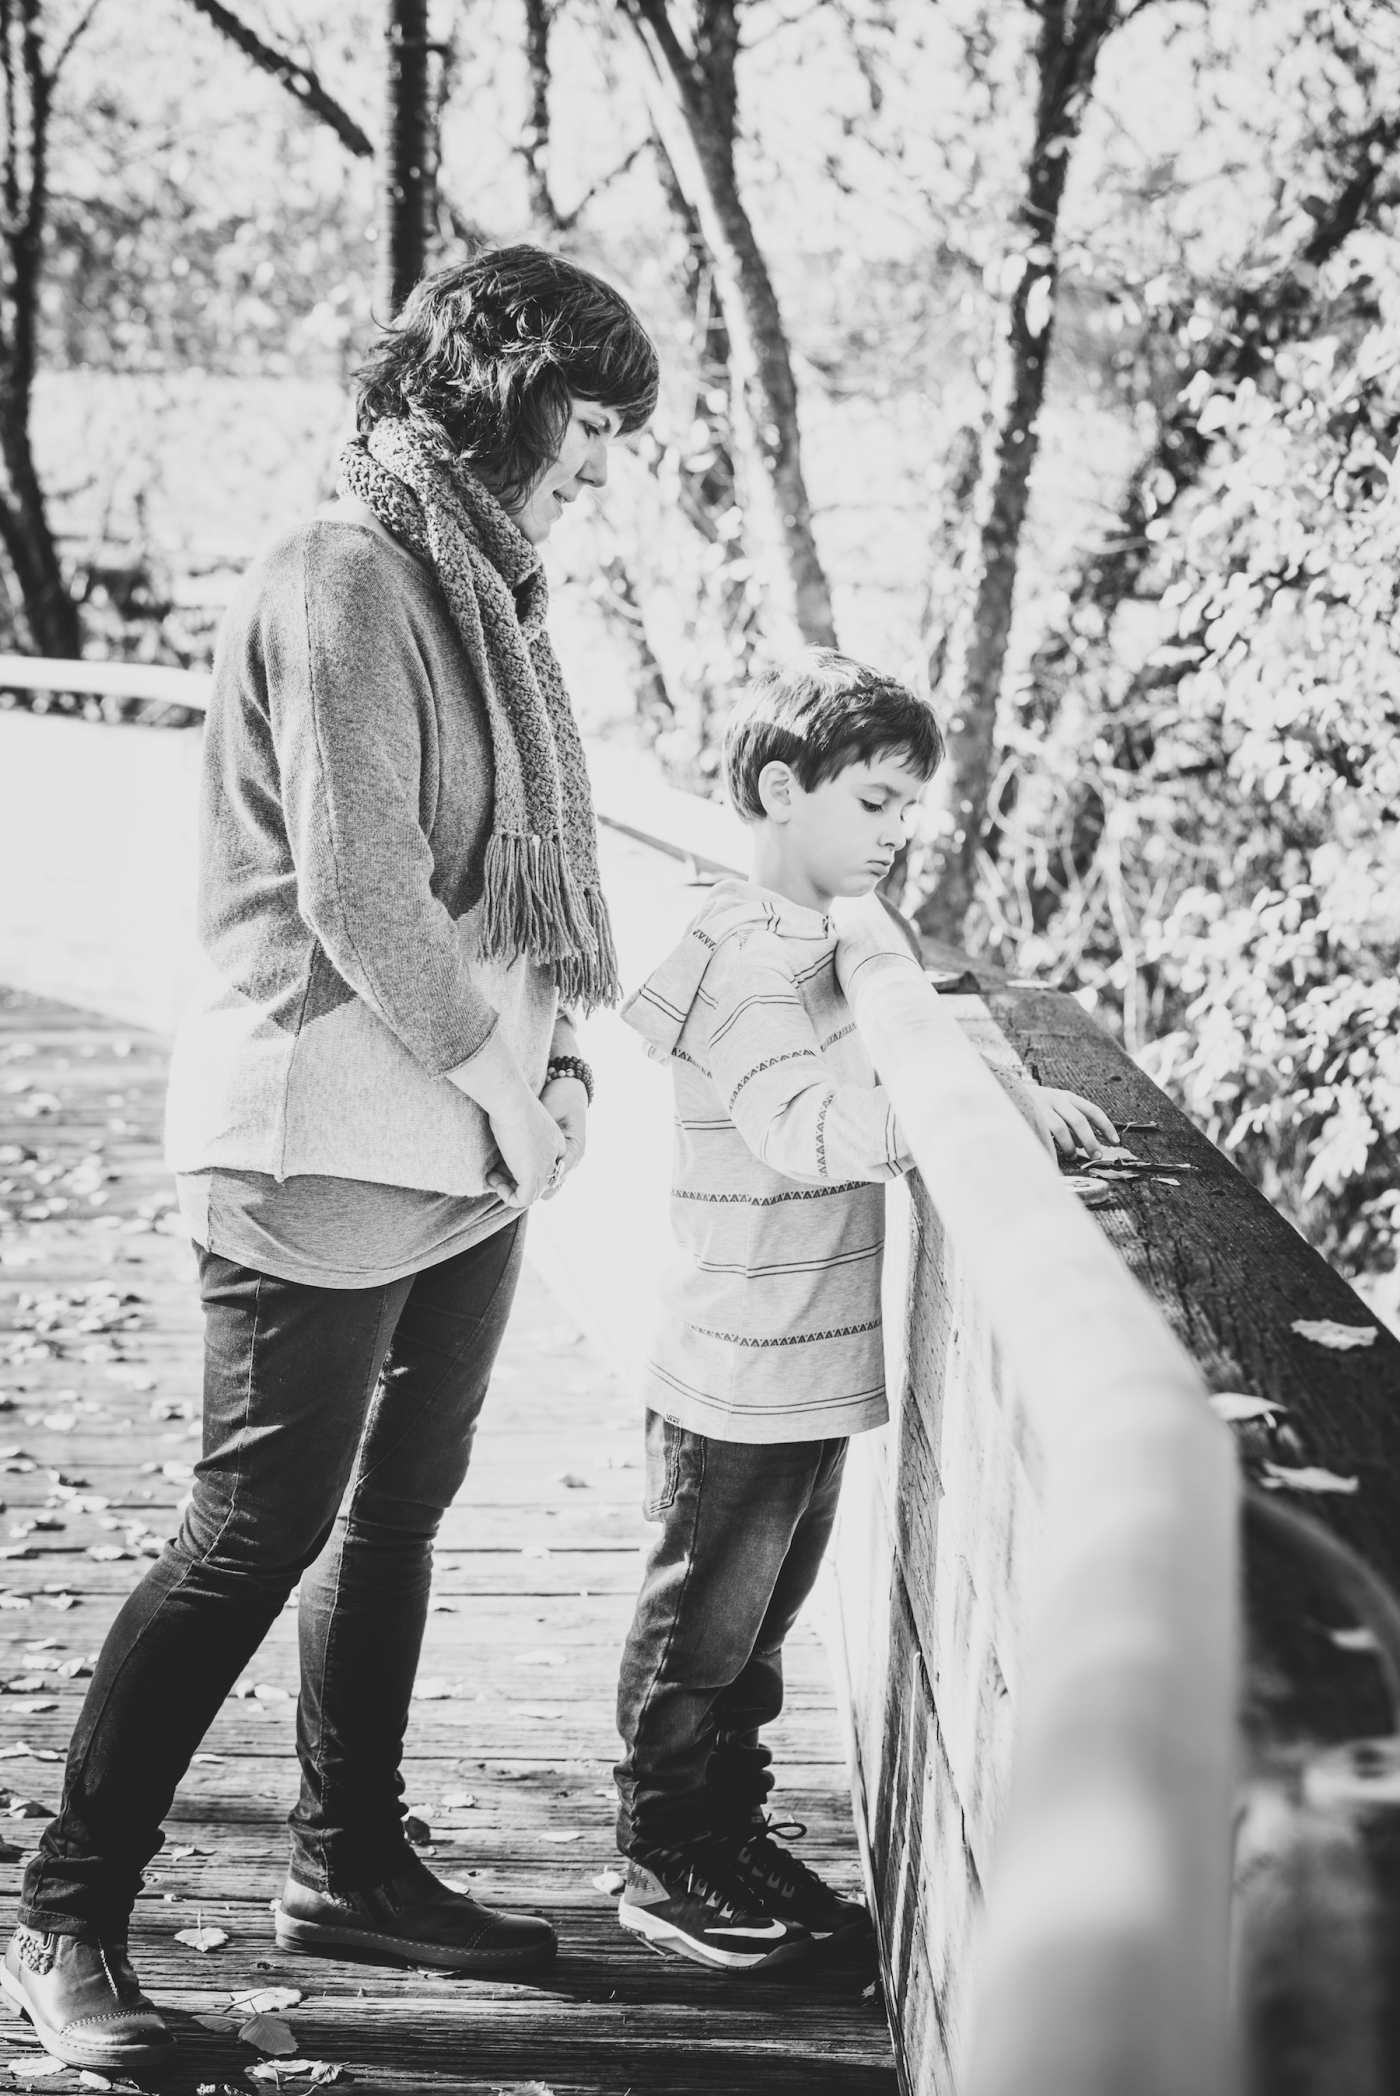 janes_photography_2016_coulon_park_renton_family_session_spencer8180